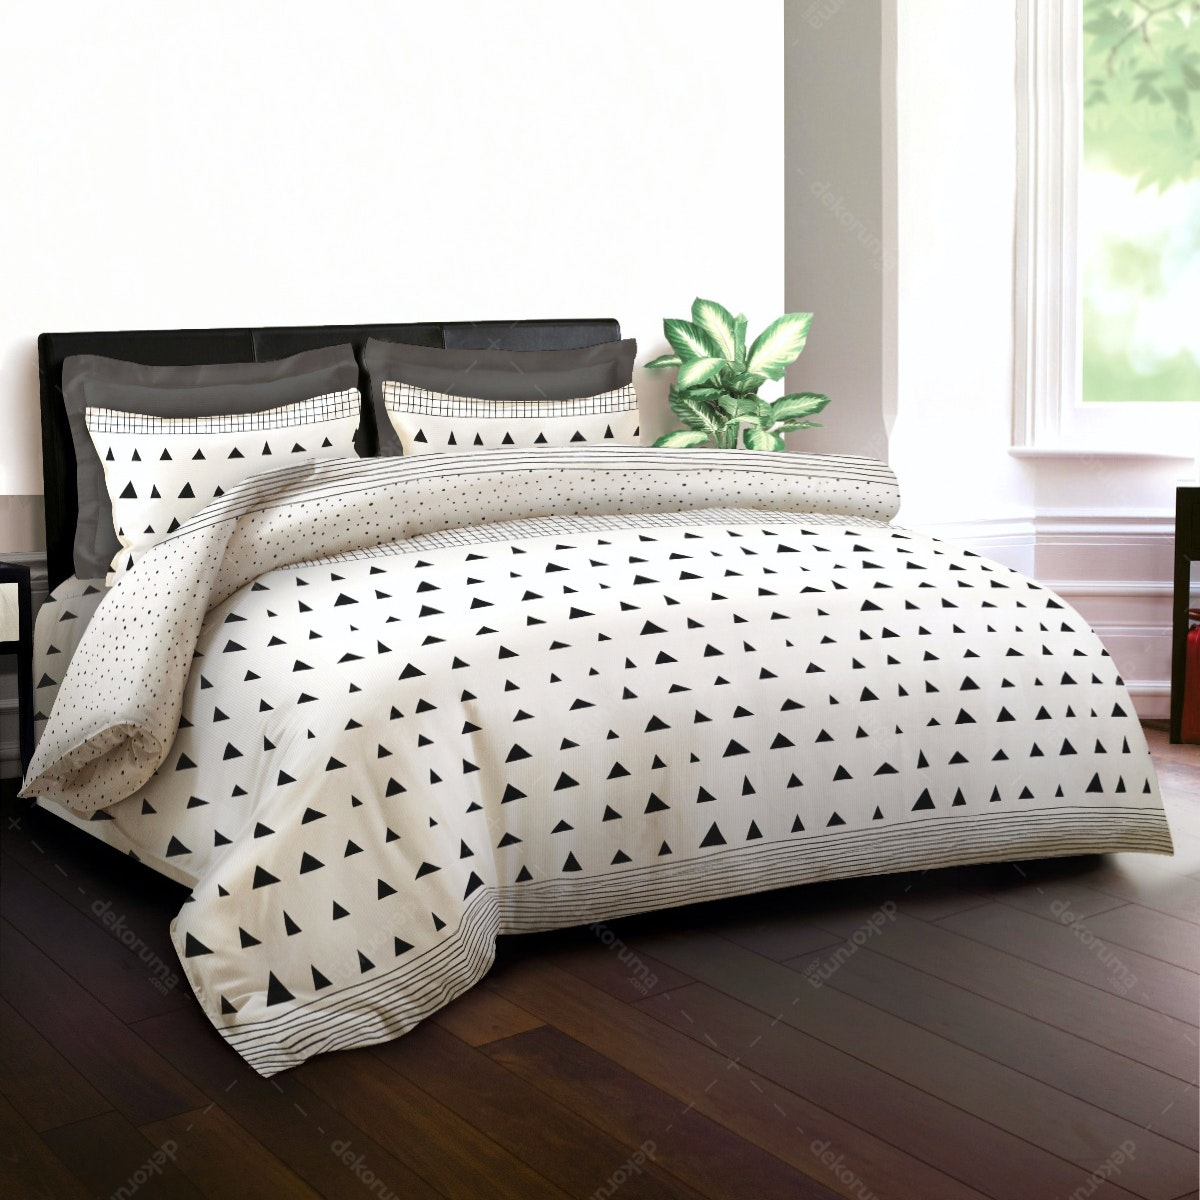 King Rabbit Bed Cover Monolog 140x230cm